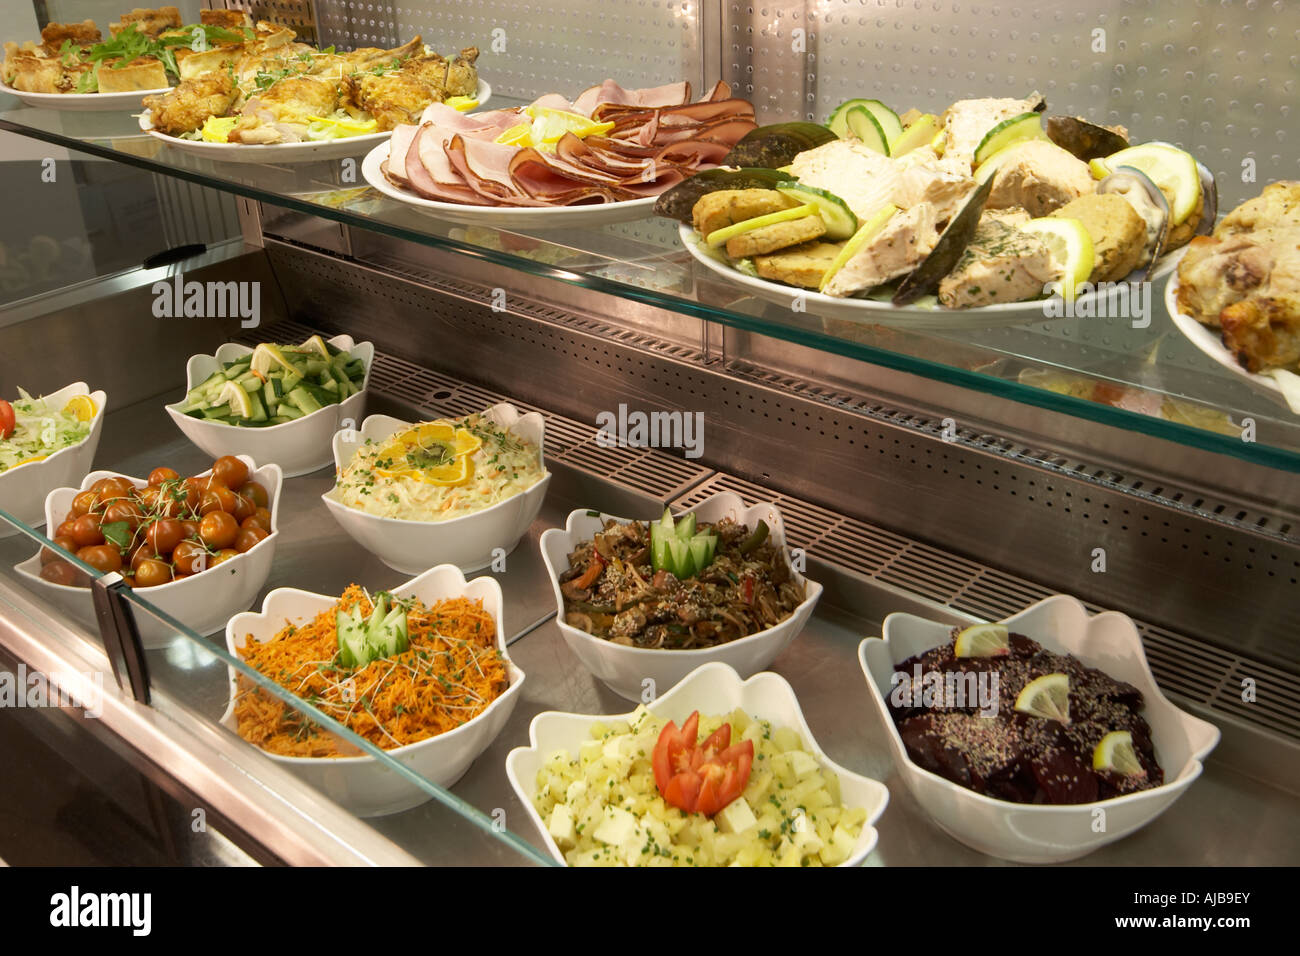 Canteen Food In Buffet With White Dishes In Stainless